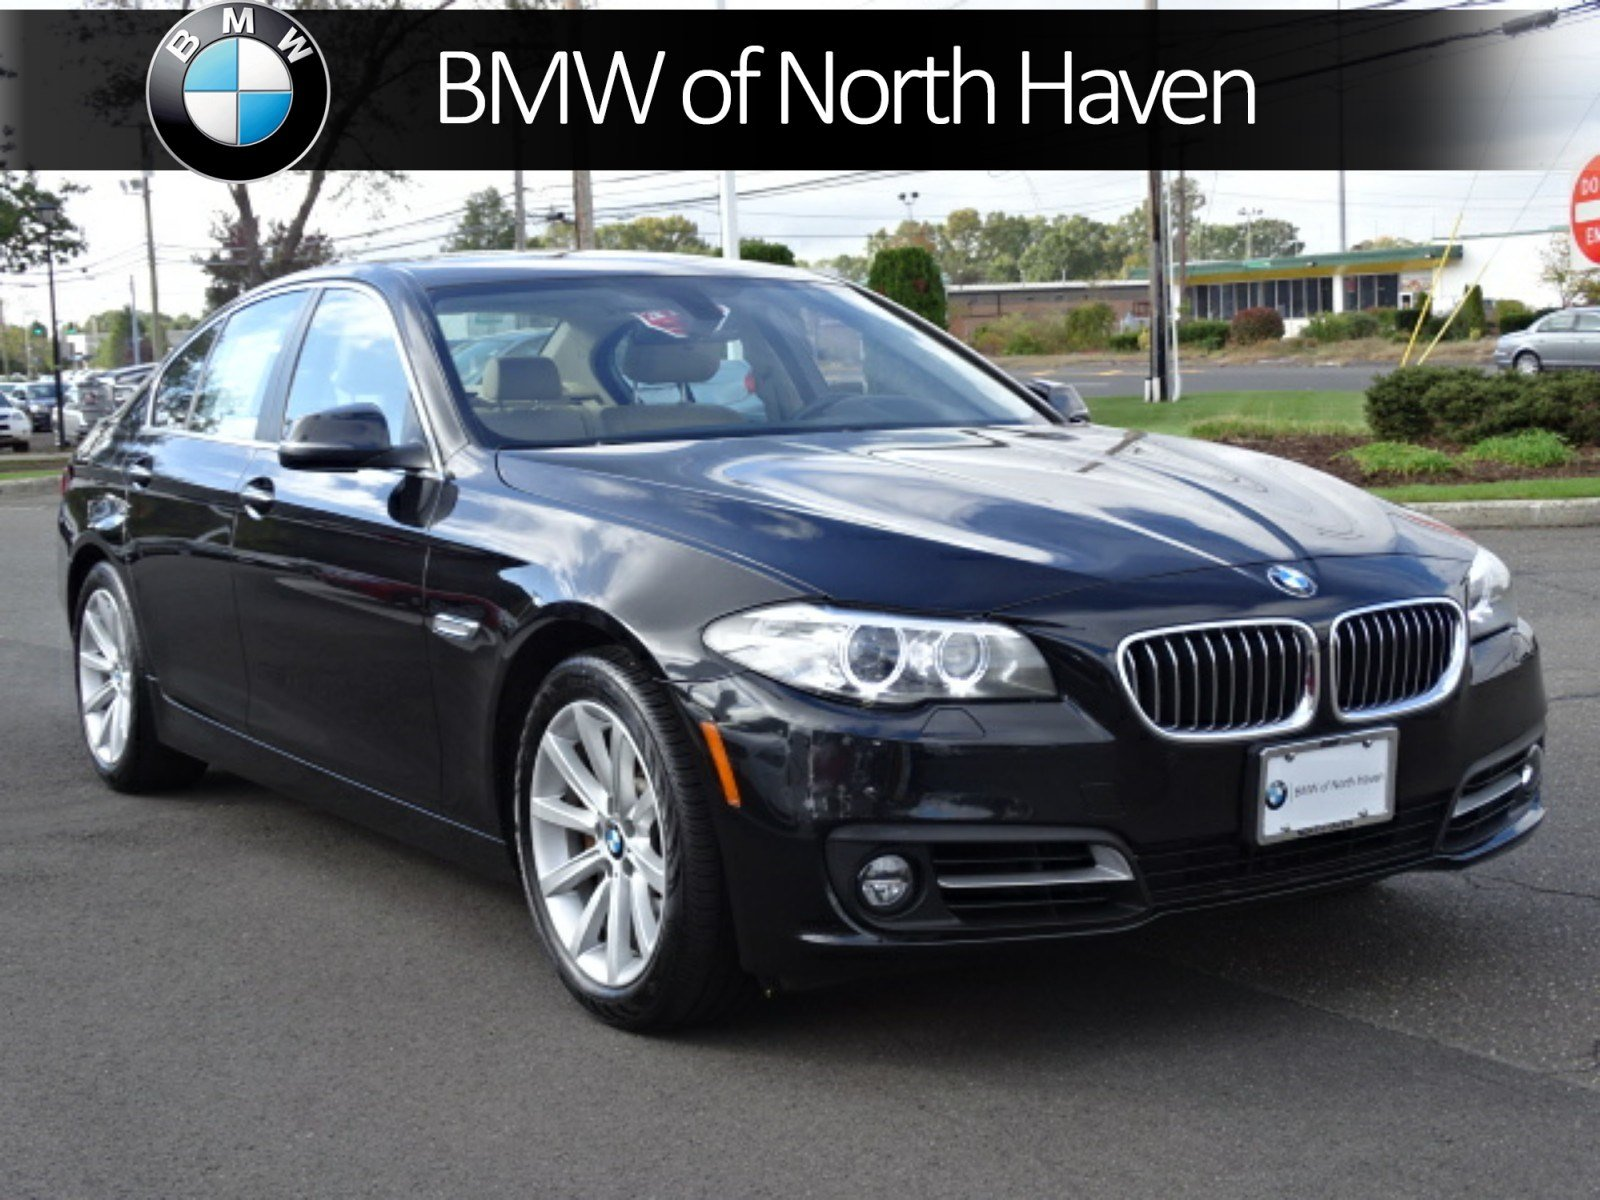 pre owned 2015 bmw 5 series 535i xdrive 4dr car in north haven 14304b bmw of north haven. Black Bedroom Furniture Sets. Home Design Ideas